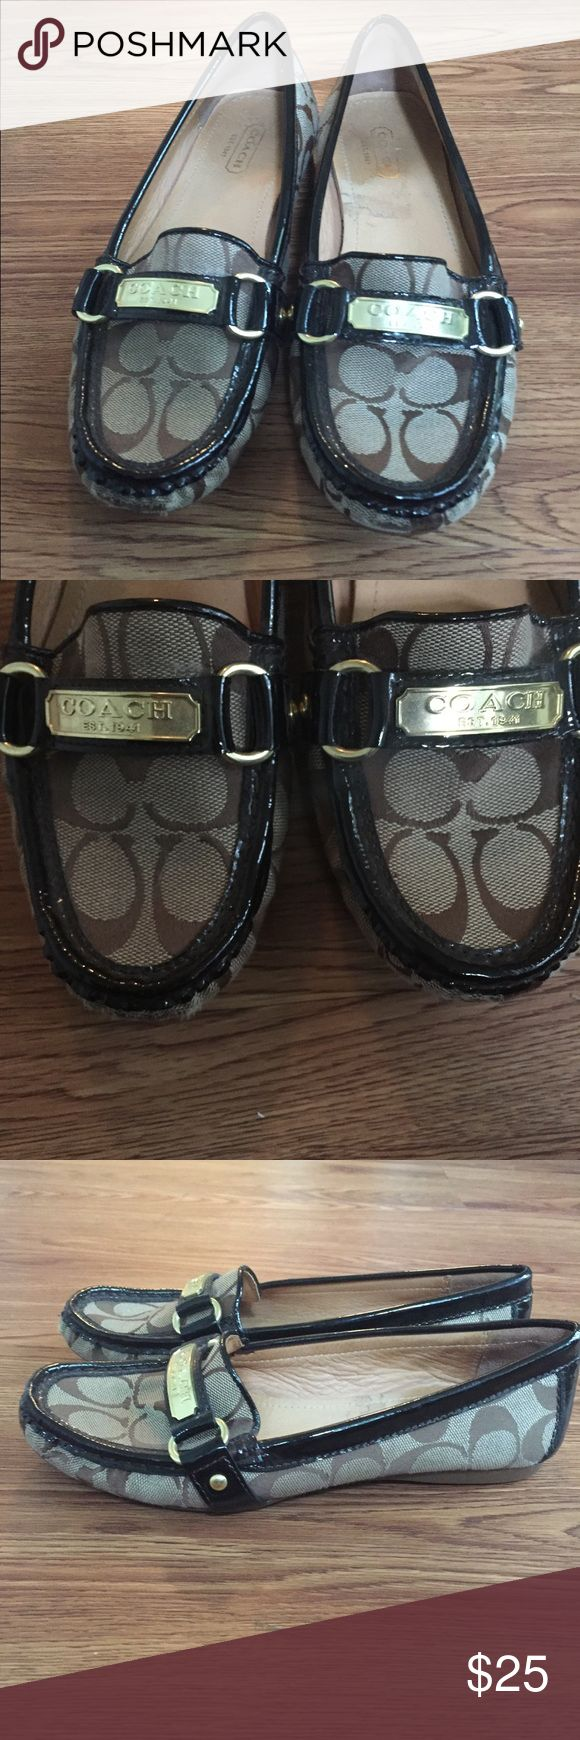 COACH Brown Flats This stylish and professional flats can make any outfit look dressed up. COACH flats in brown. Only worn twice. They were just a little small for me. Great staple for your wardrobe! Coach Shoes Flats & Loafers